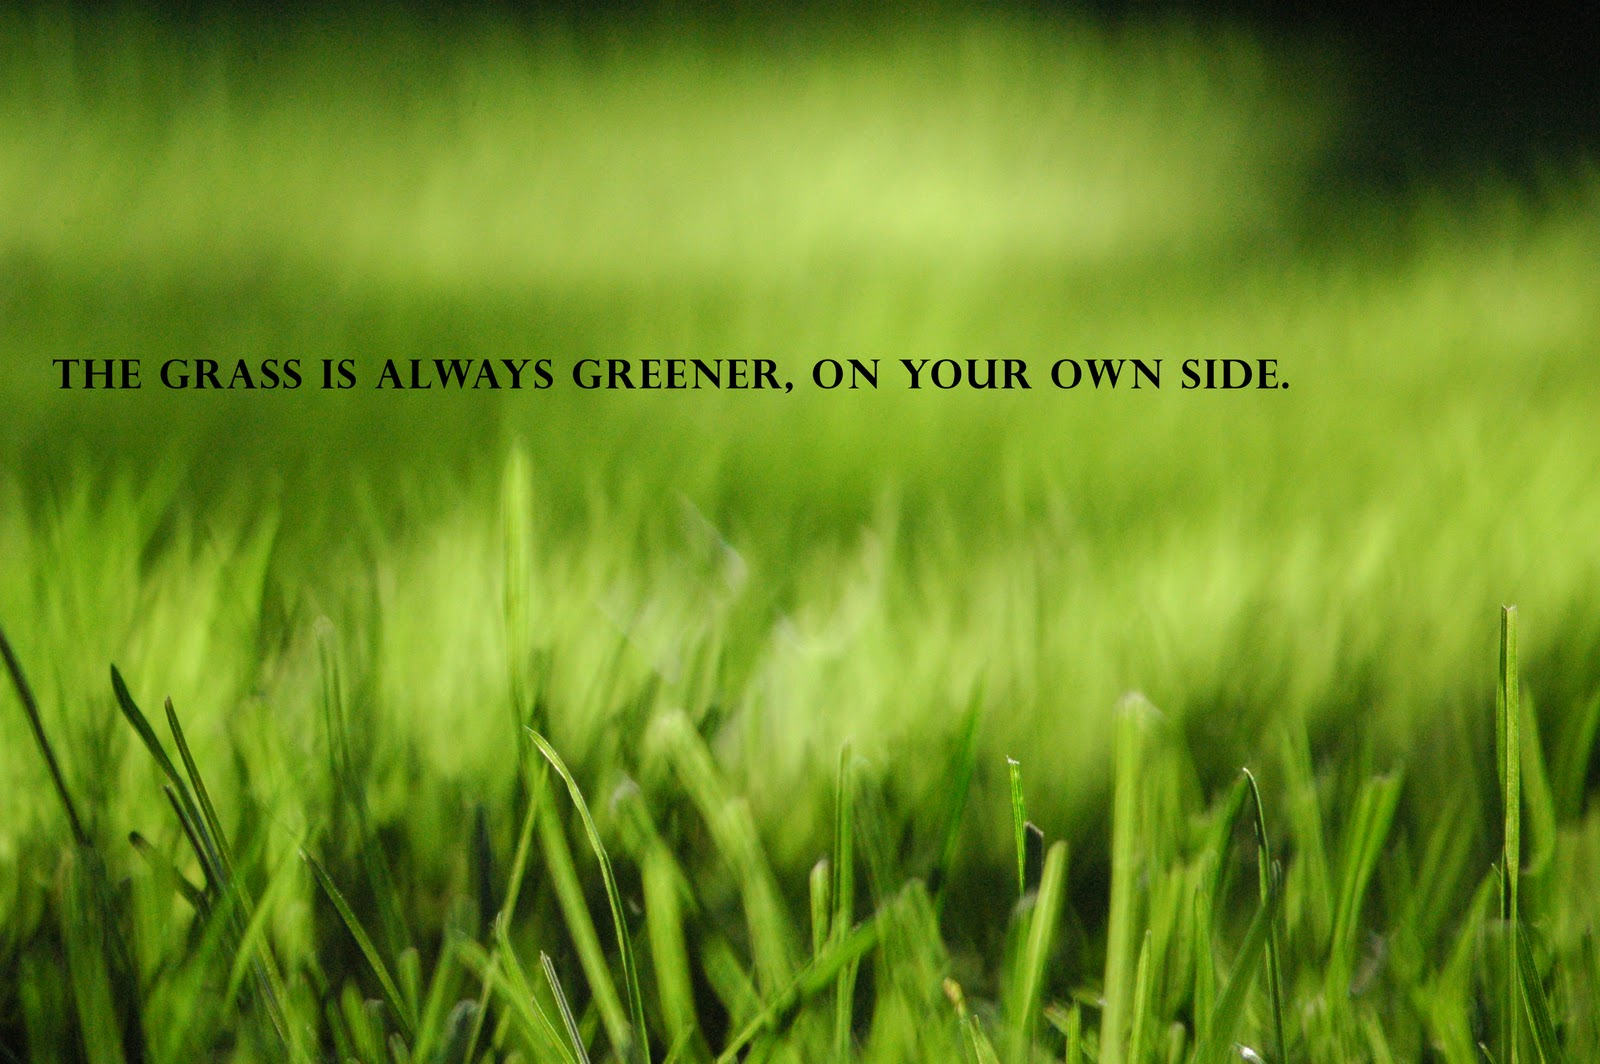 Grass always greener other side